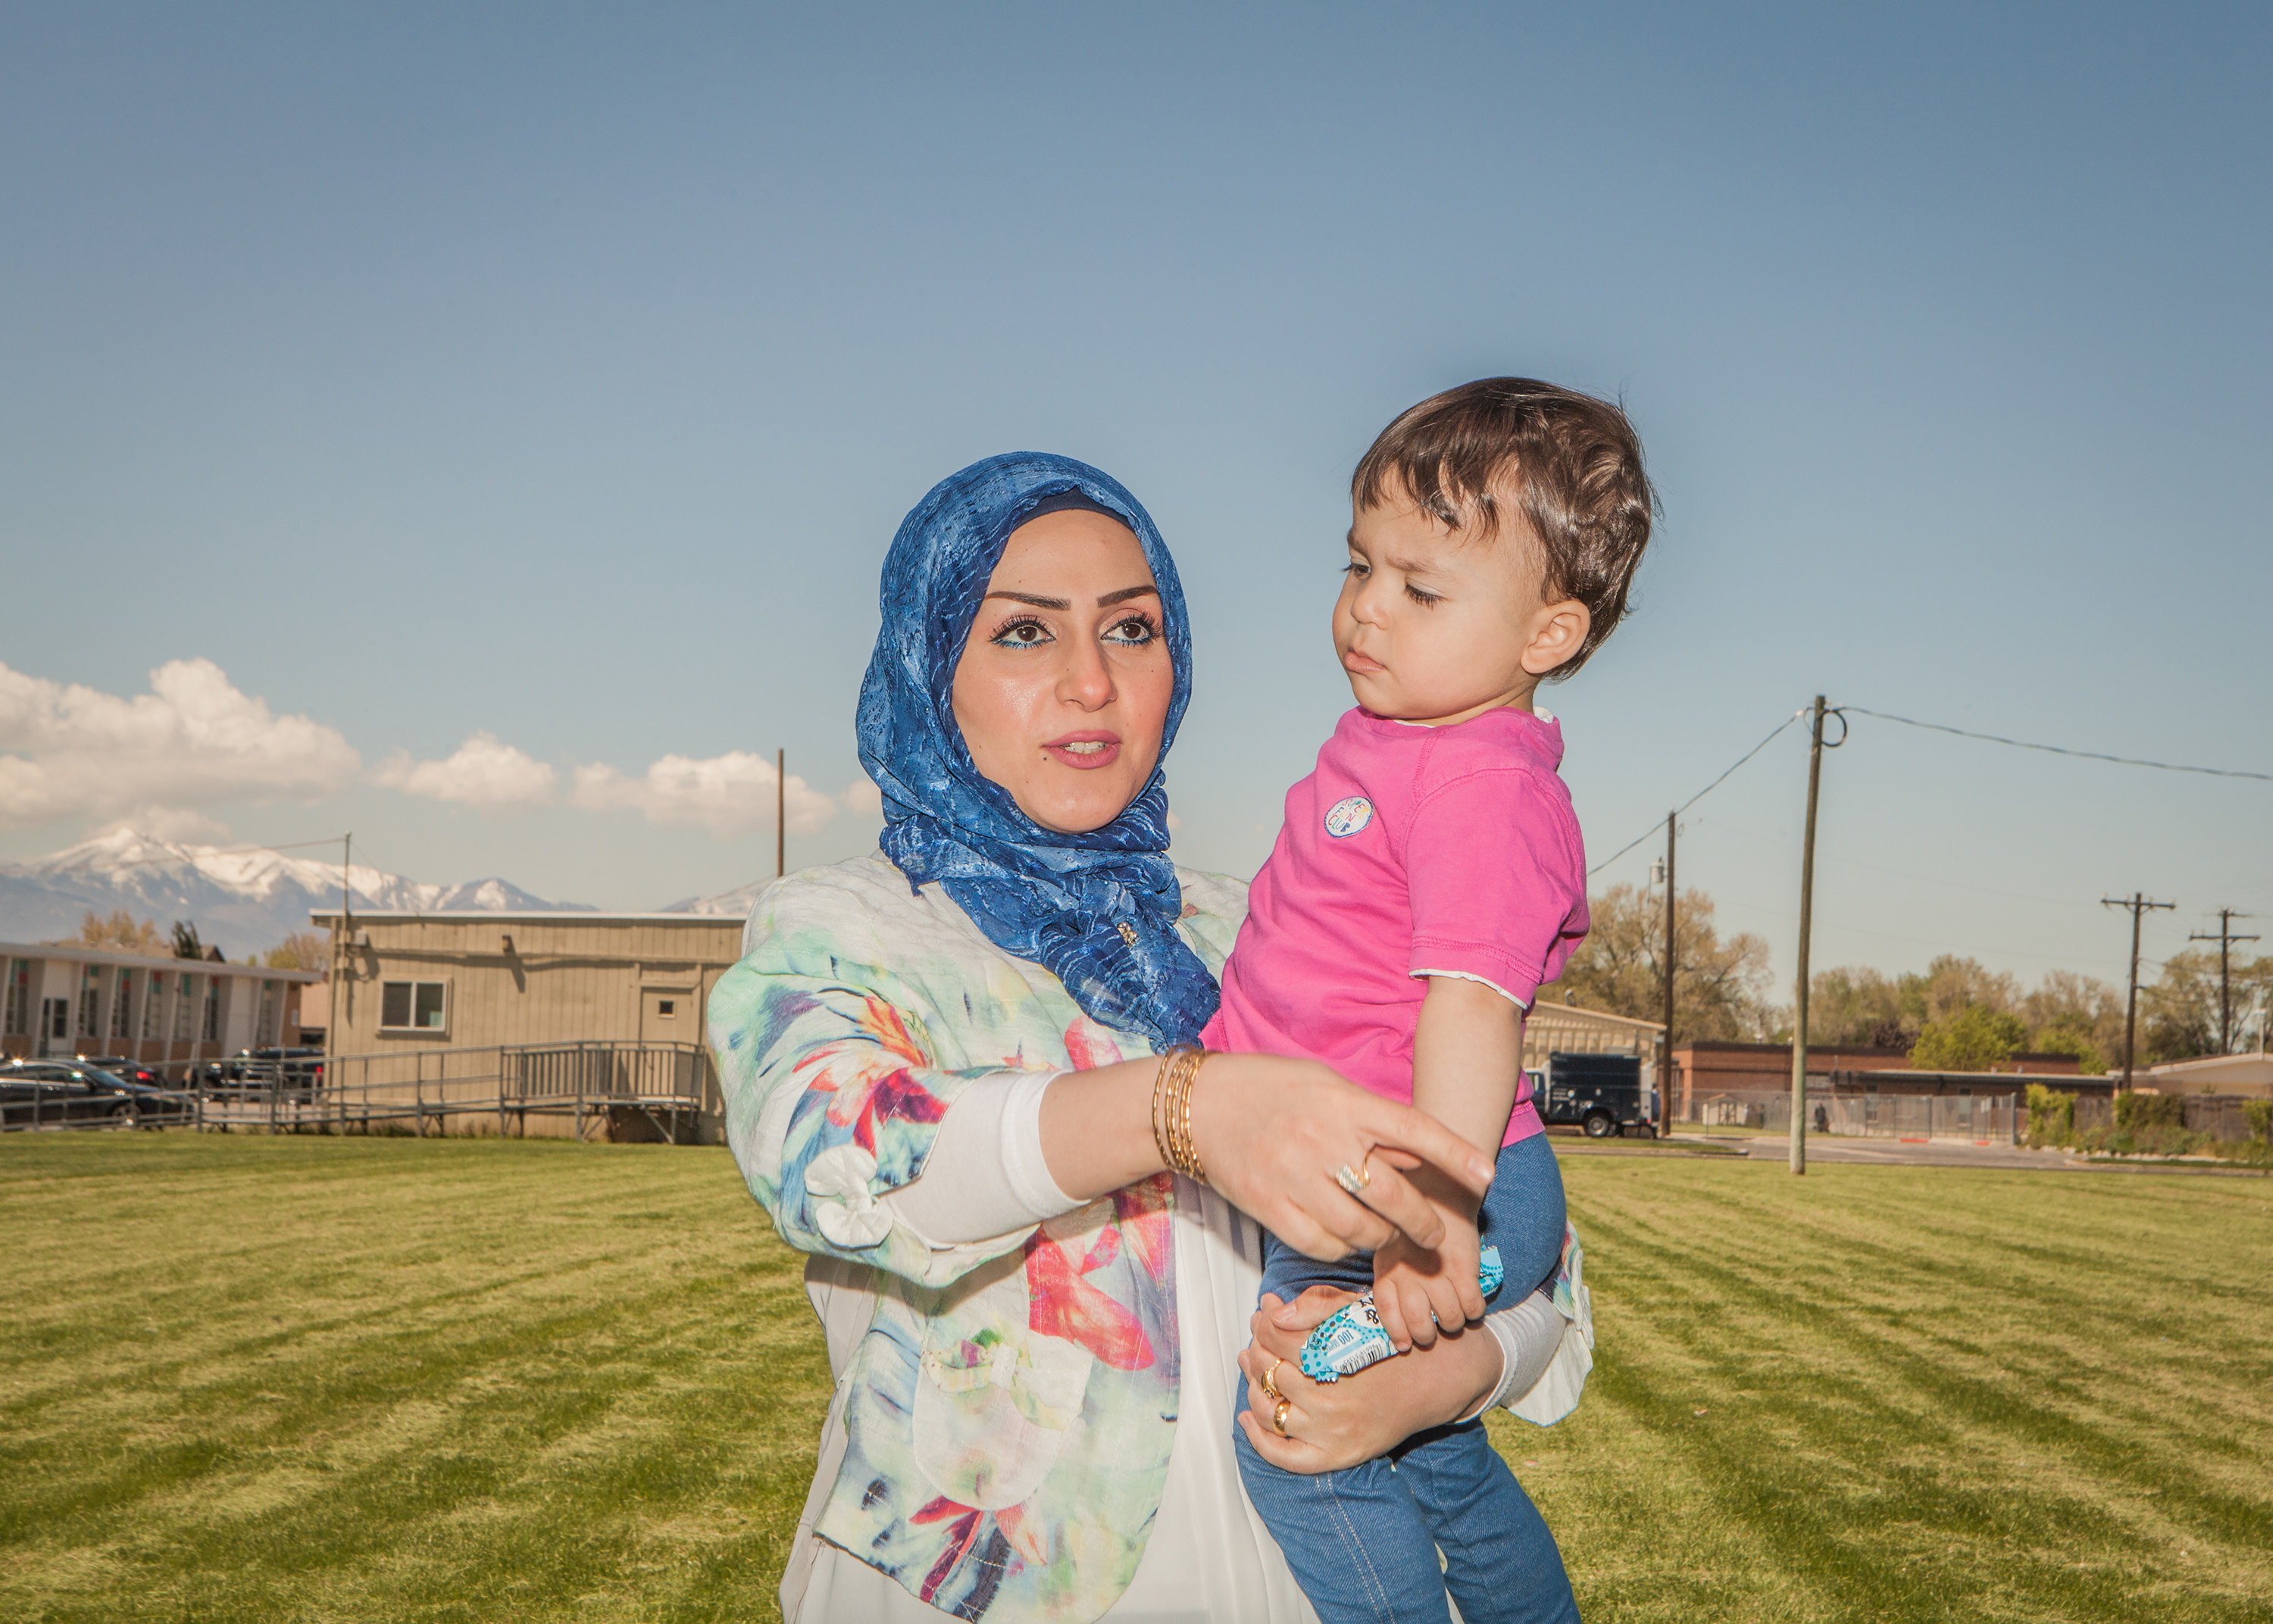 A woman in a hijab holding a child